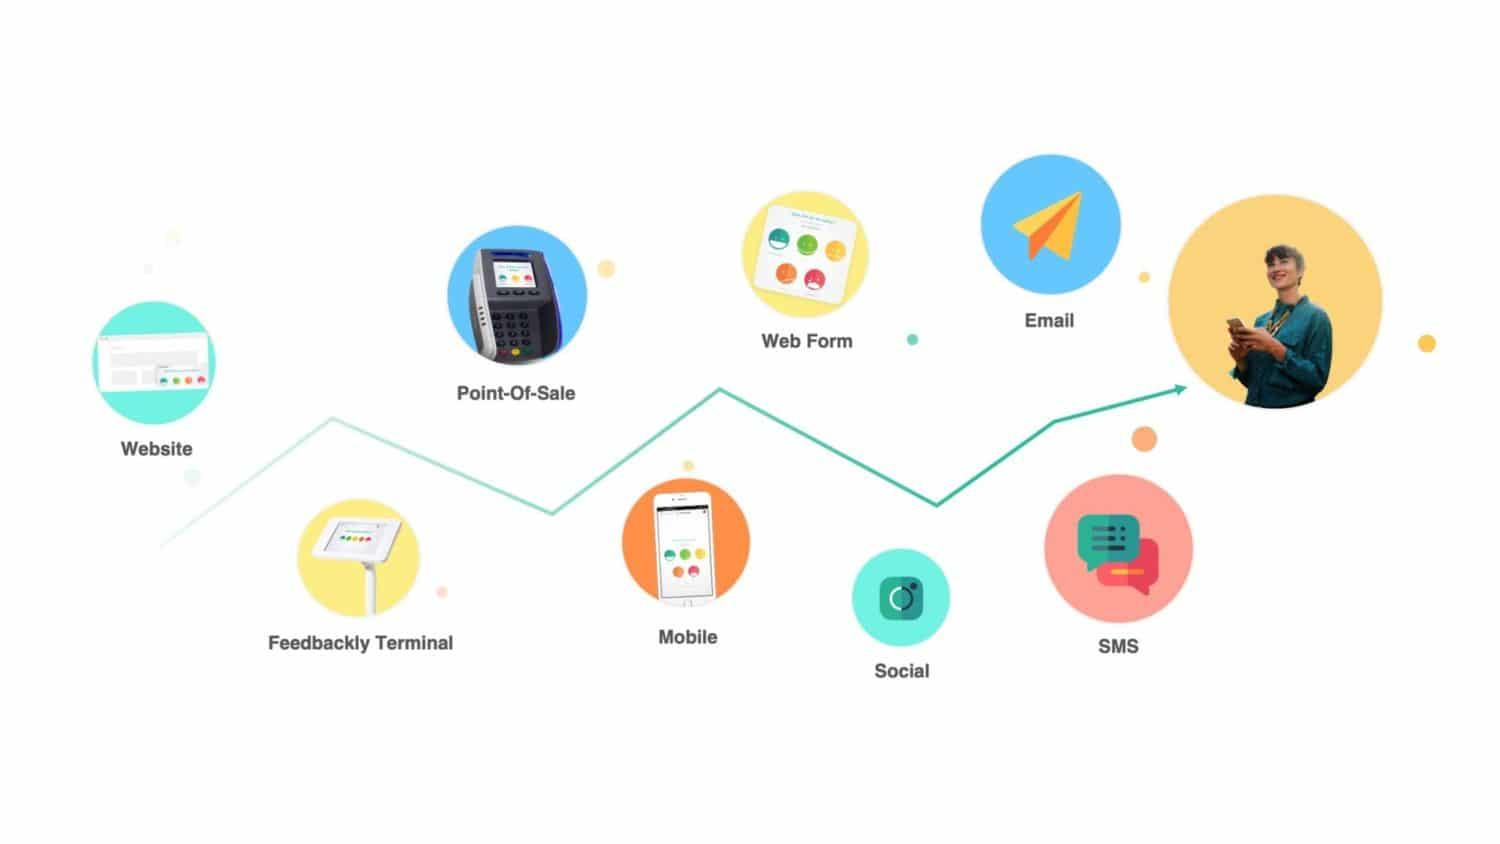 Feedbackly's omnichannel customer journey